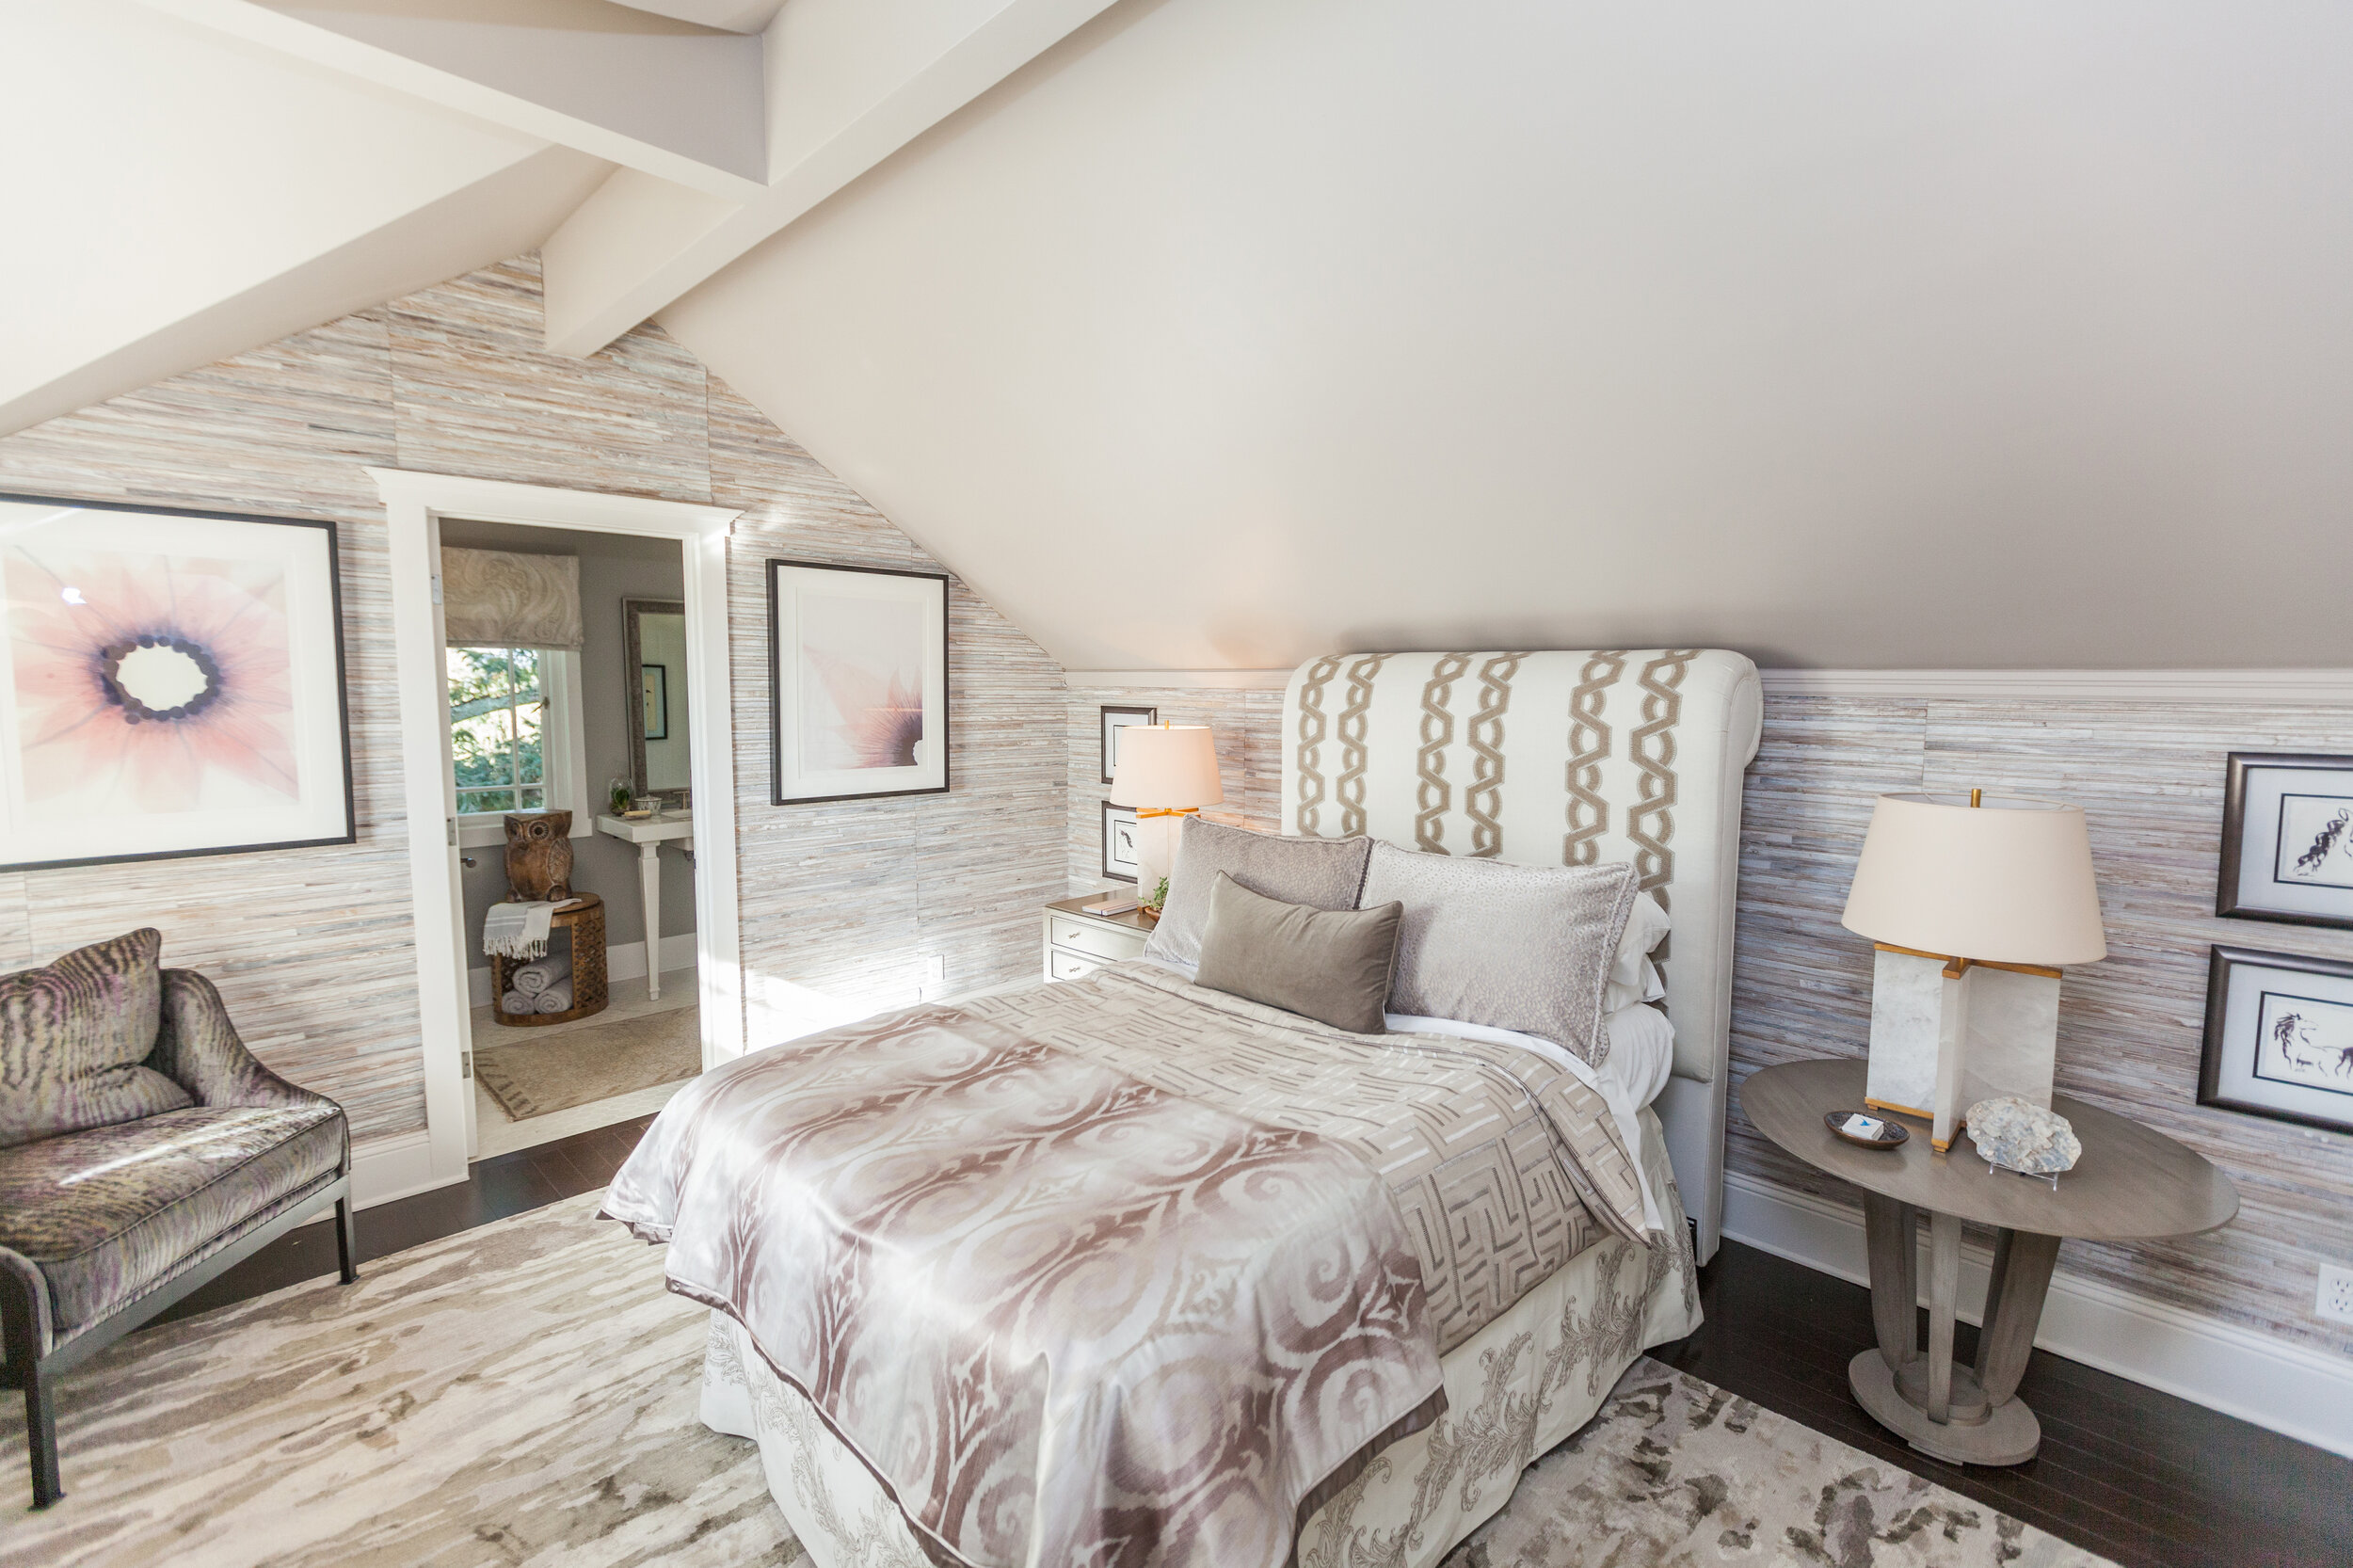 Napa-Guestroom_Ceiling-Cool-Fog_BD9_Trim-is-Whiteout-C2480_Tish-MIlls-of-Harmonius-Living.jpg